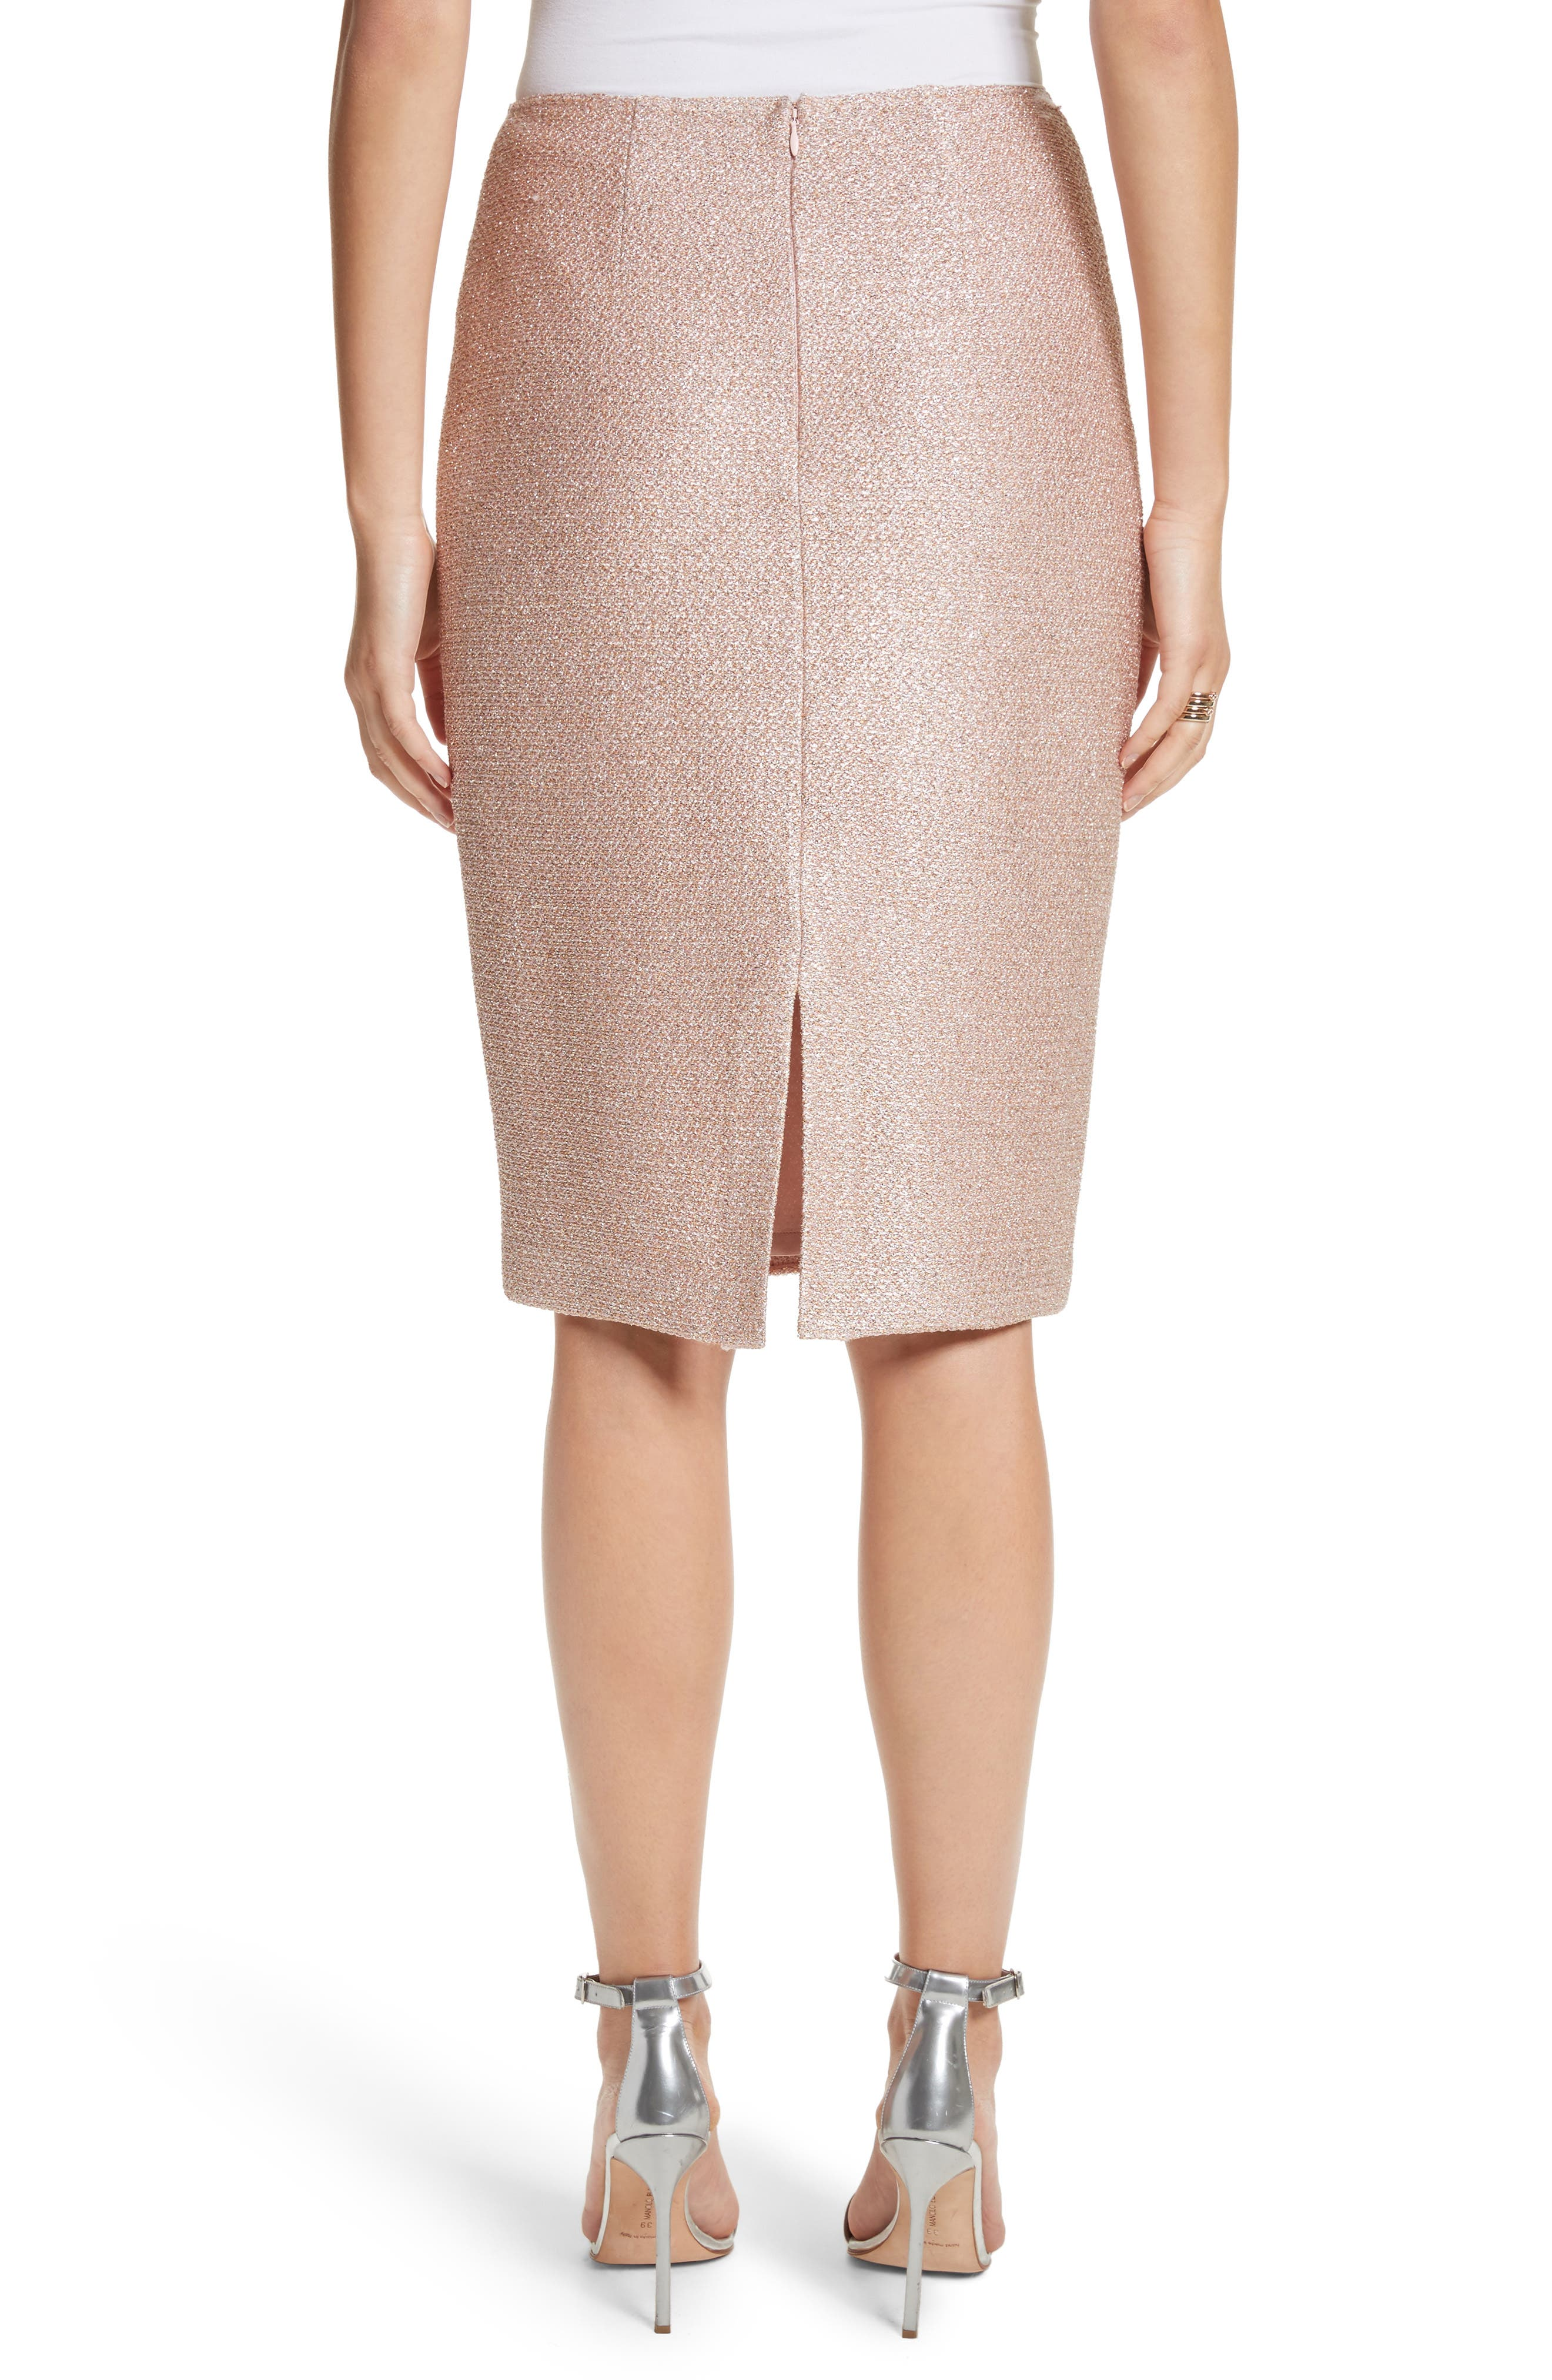 Frosted Metallic Knit Pencil Skirt,                             Alternate thumbnail 2, color,                             660